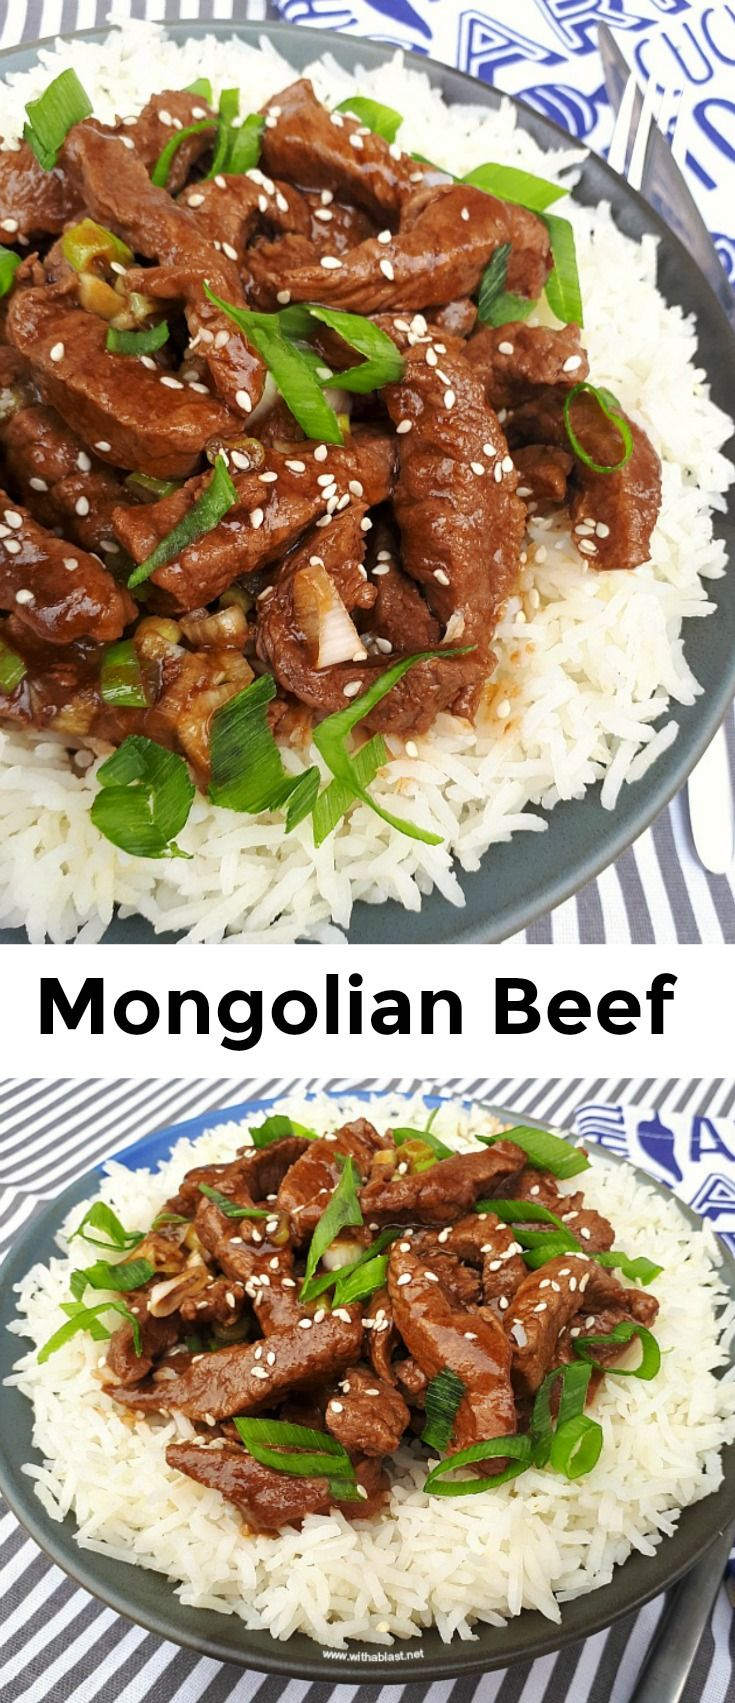 Mongolian Beef Only Takes 15 Minutes And Is A Delicious Dinner Beef Strips Covered In A Thick Recipes With Beef Strips Mongolian Beef Recipes Yummy Dinners